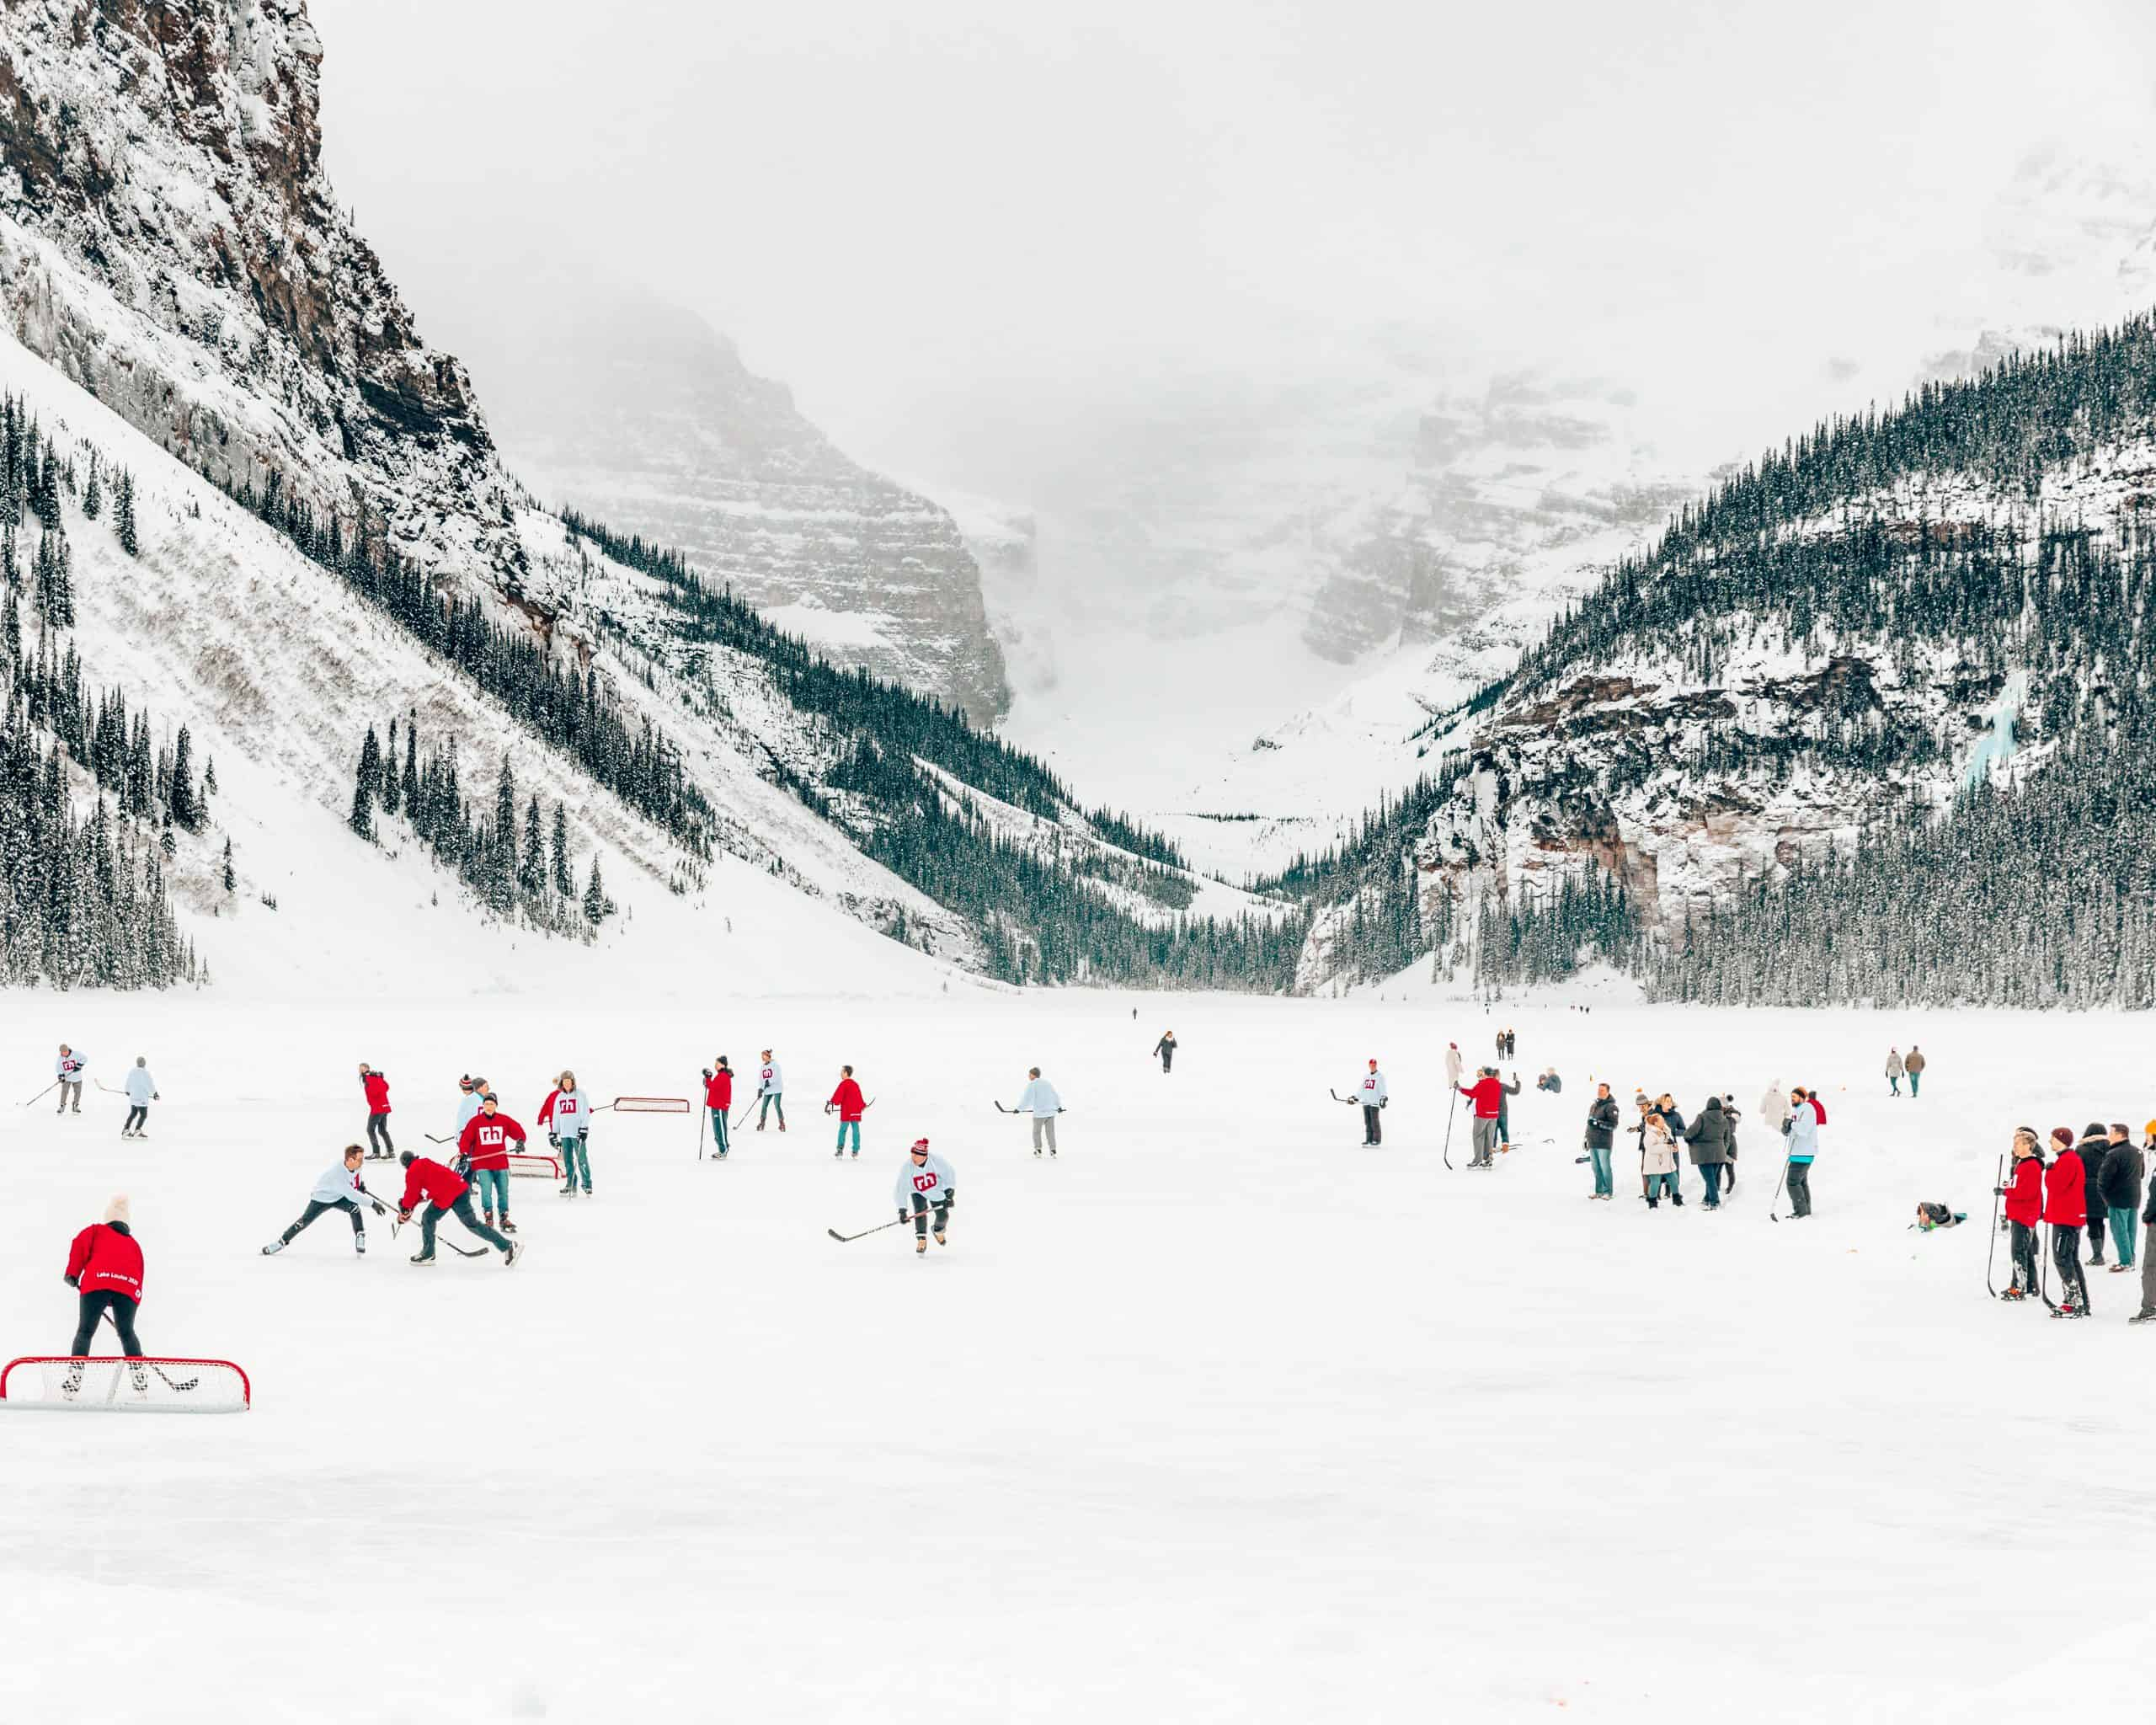 Ice Hockey Game at Lake Louise - The Next Trip